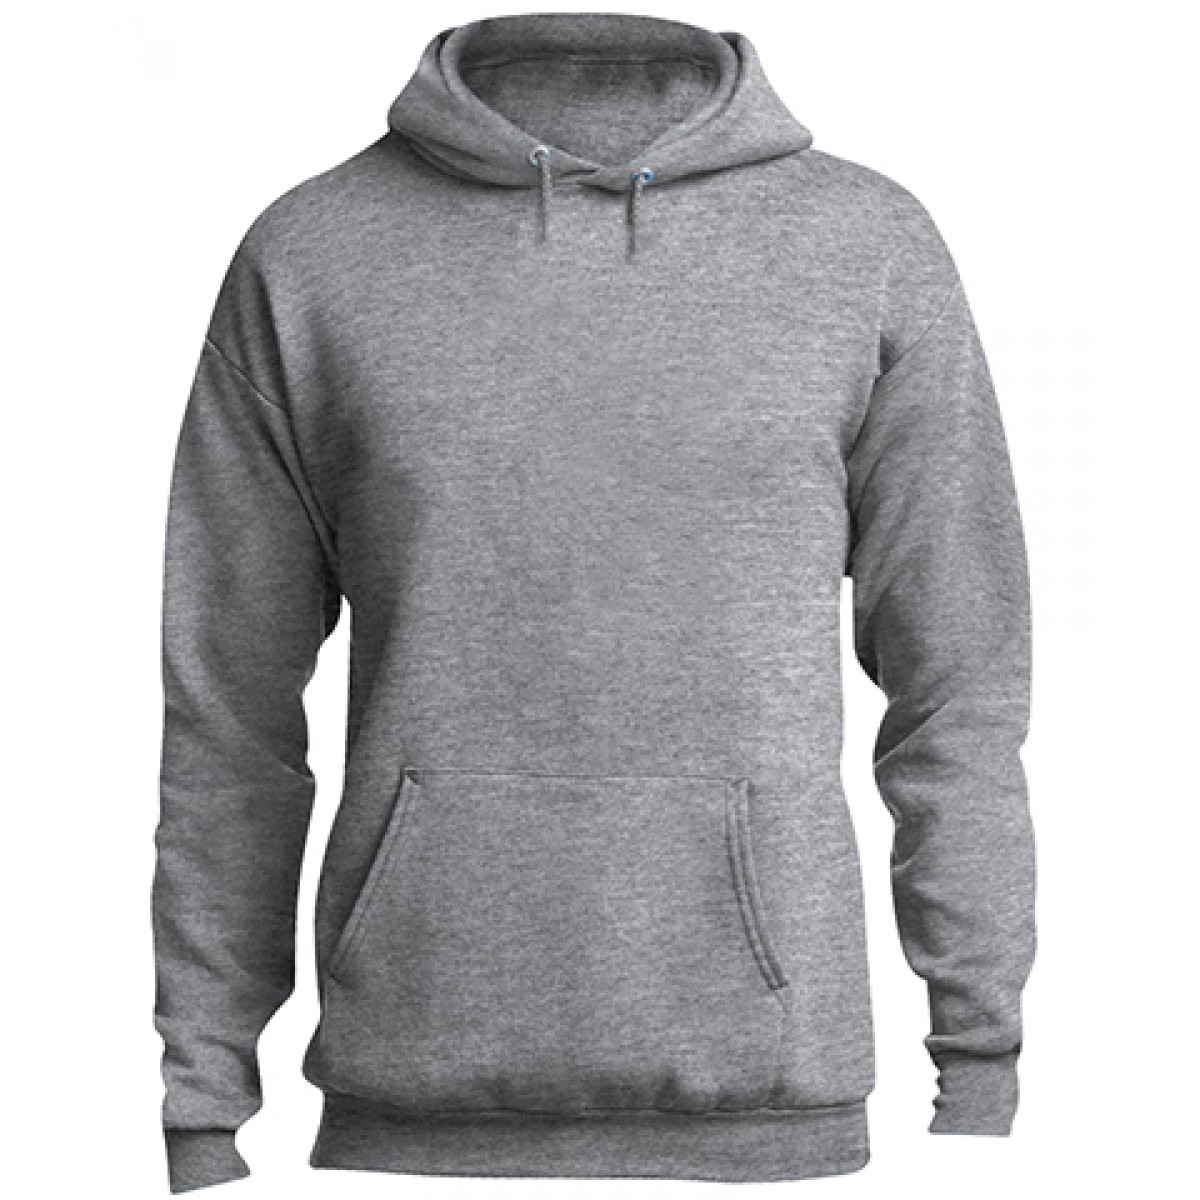 Classic Pullover Hooded Sweatshirt-Athletic Heather-XL